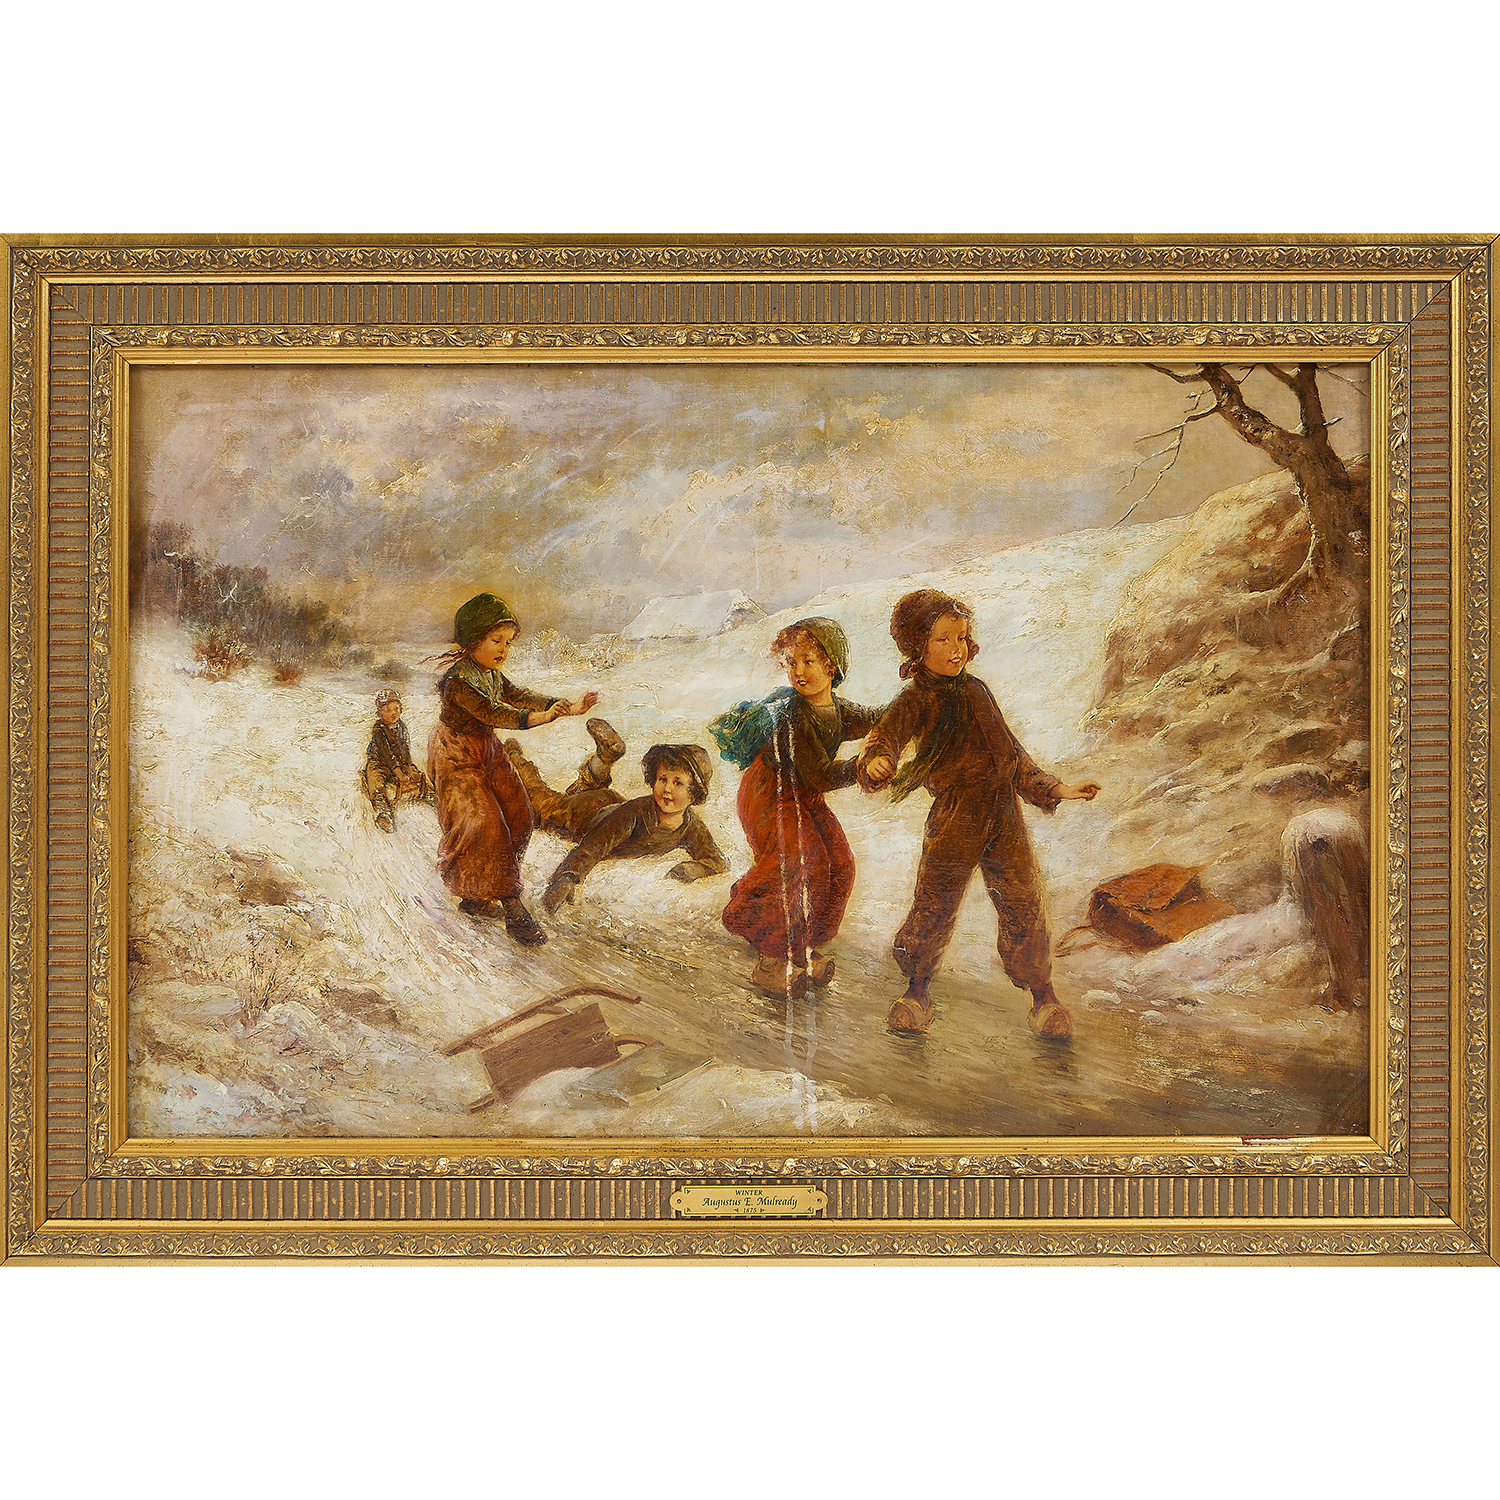 "Augustus Edwin Mulready, (British, 1844-1905), Winter, 1875, oil on canvas, 19 7/8"" x 32 1/4"""